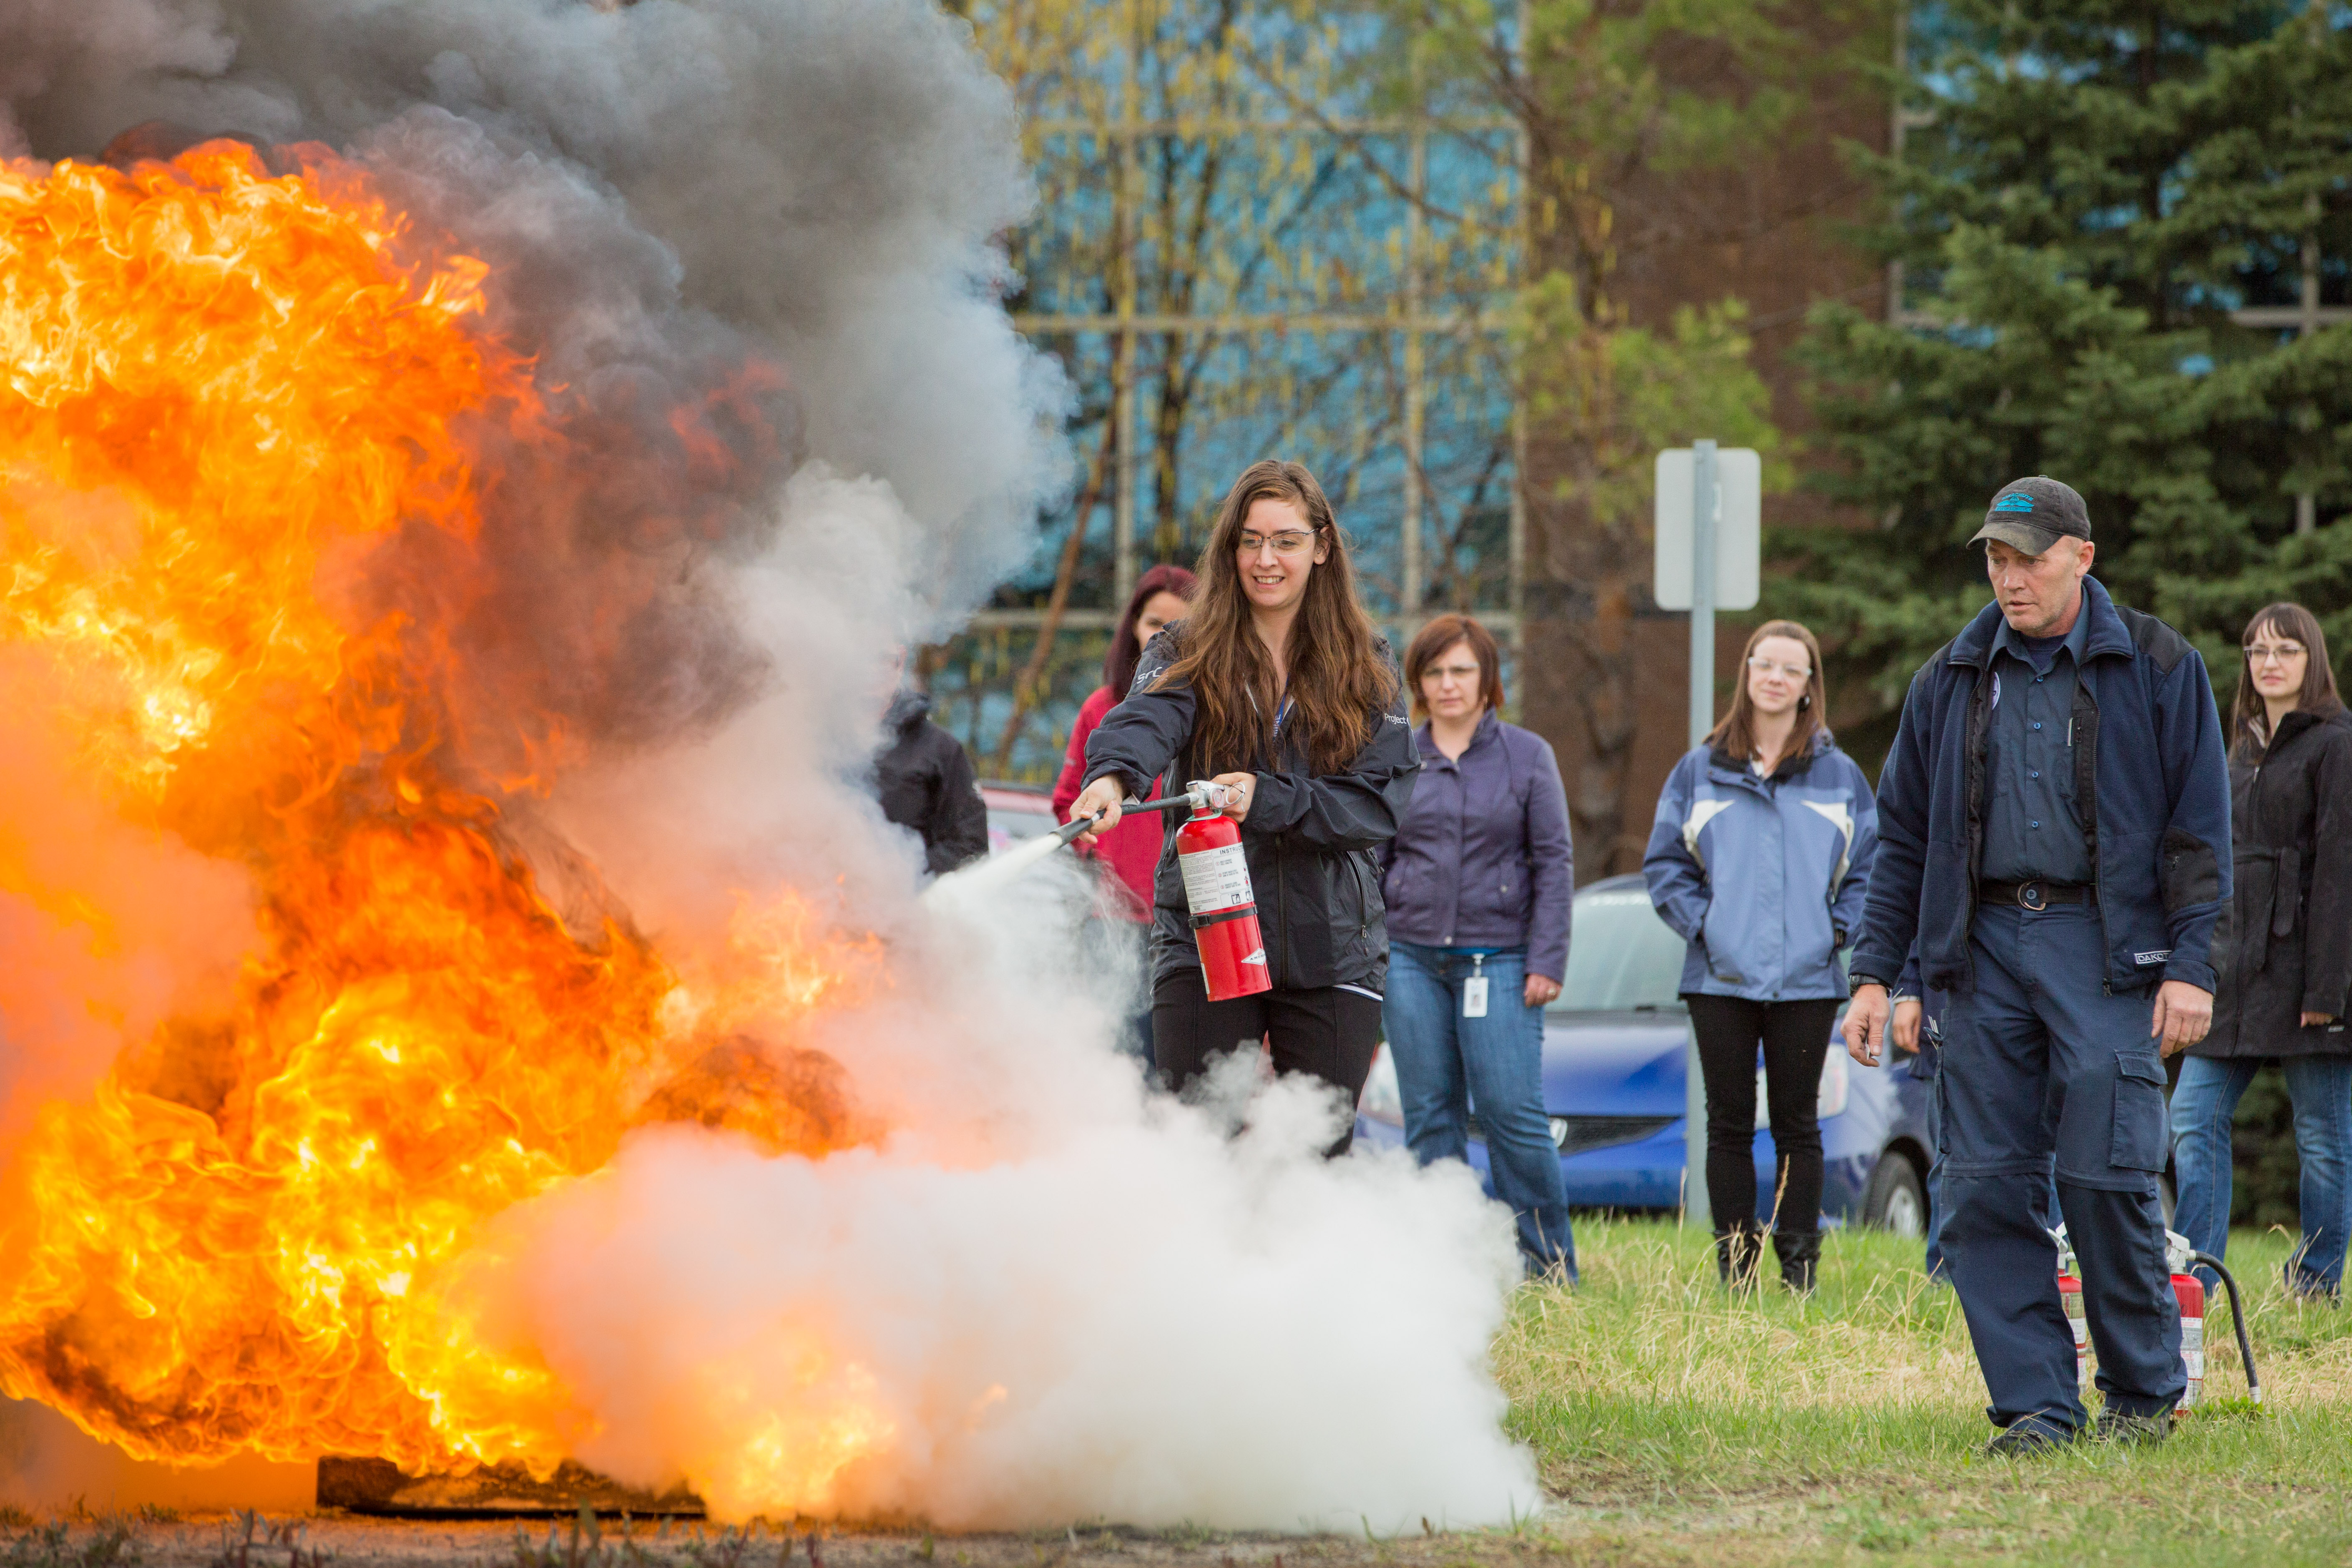 Woman extinguishes fire during fire extinguisher training